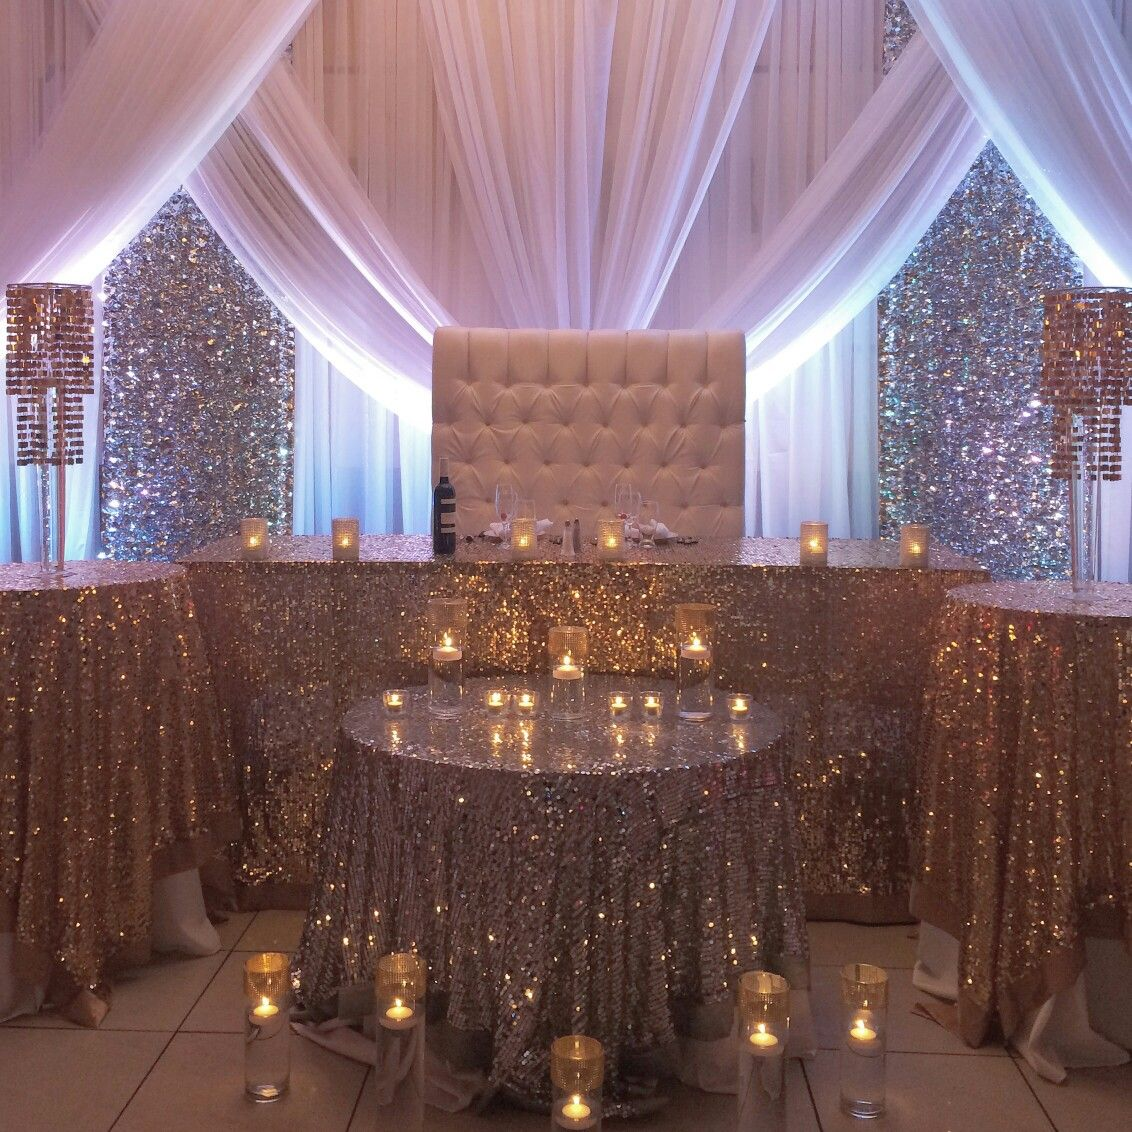 Wedding reception stage decoration images  Pin by Calpernia Hines on My Dream Wedding  Pinterest  Wedding